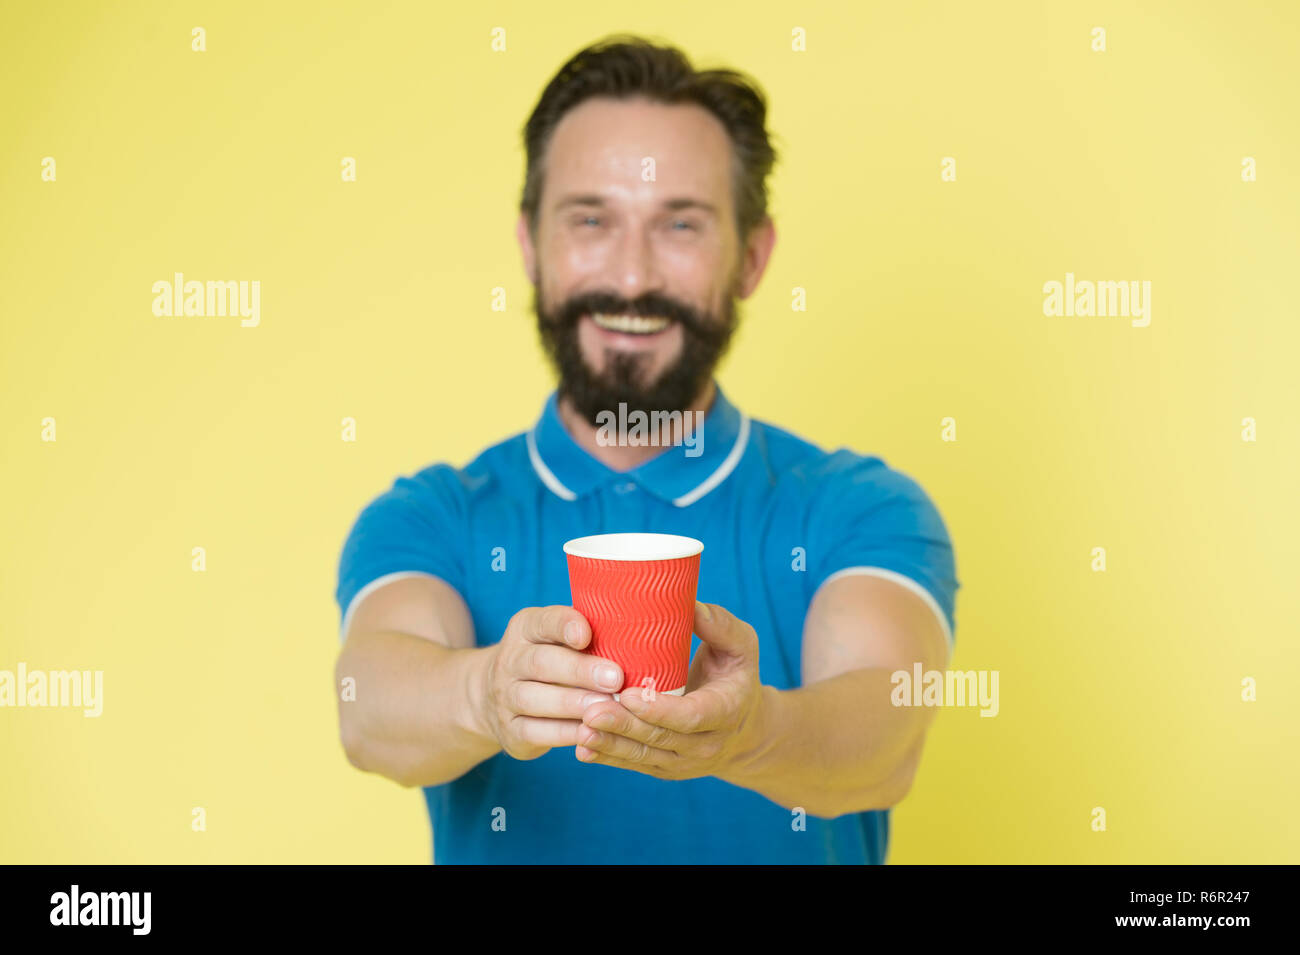 Guy beard and mustache holds paper cup of tea or coffee. Offer drink to you. Trainer experienced man care about water balance. Share and generosity concept. Have a sip. Take this if you want to drink. - Stock Image